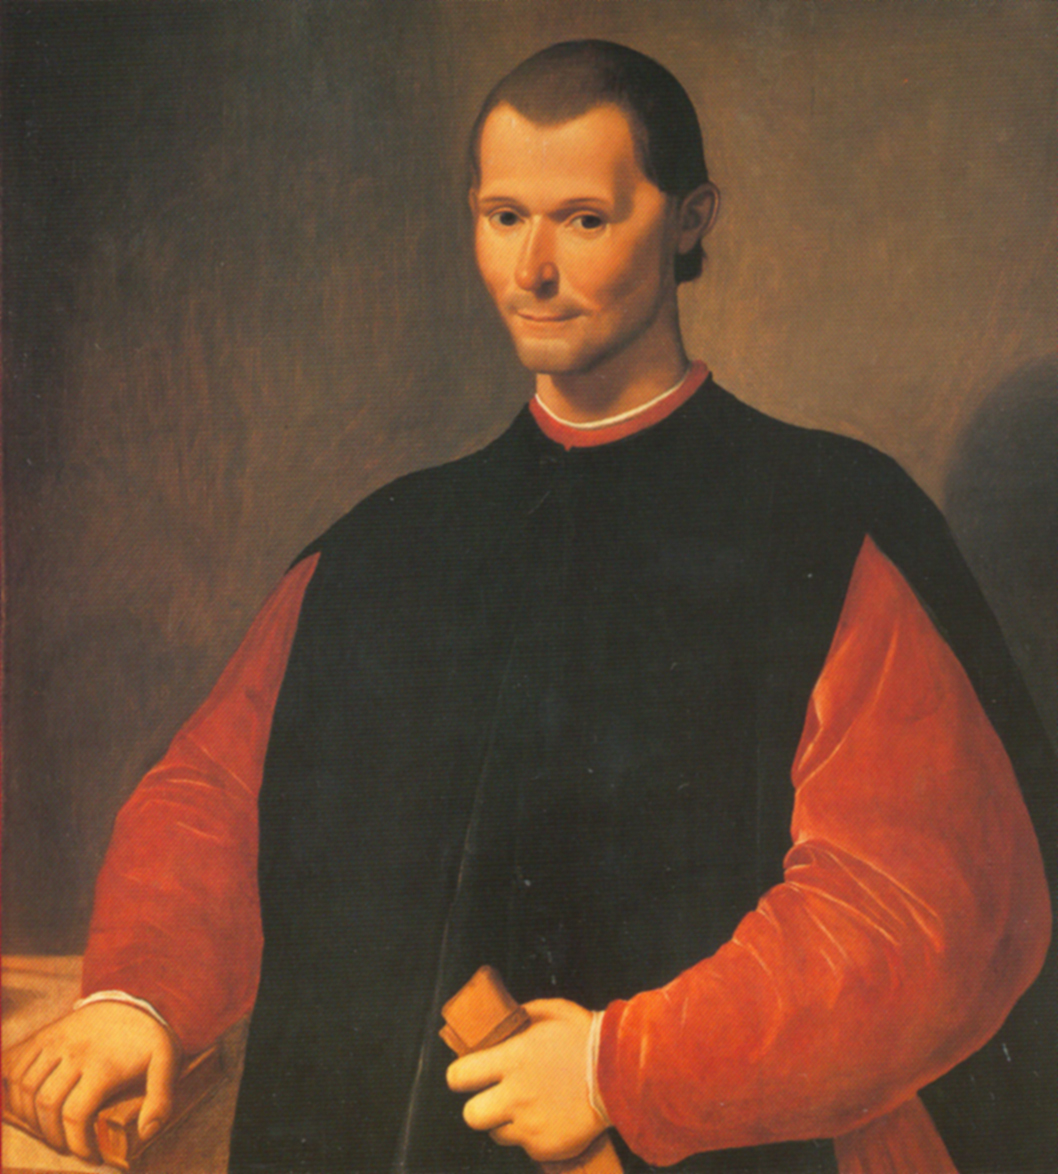 http://upload.wikimedia.org/wikipedia/commons/1/1e/Santi_di_Tito_-_Niccolo_Machiavelli%27s_portrait.jpg